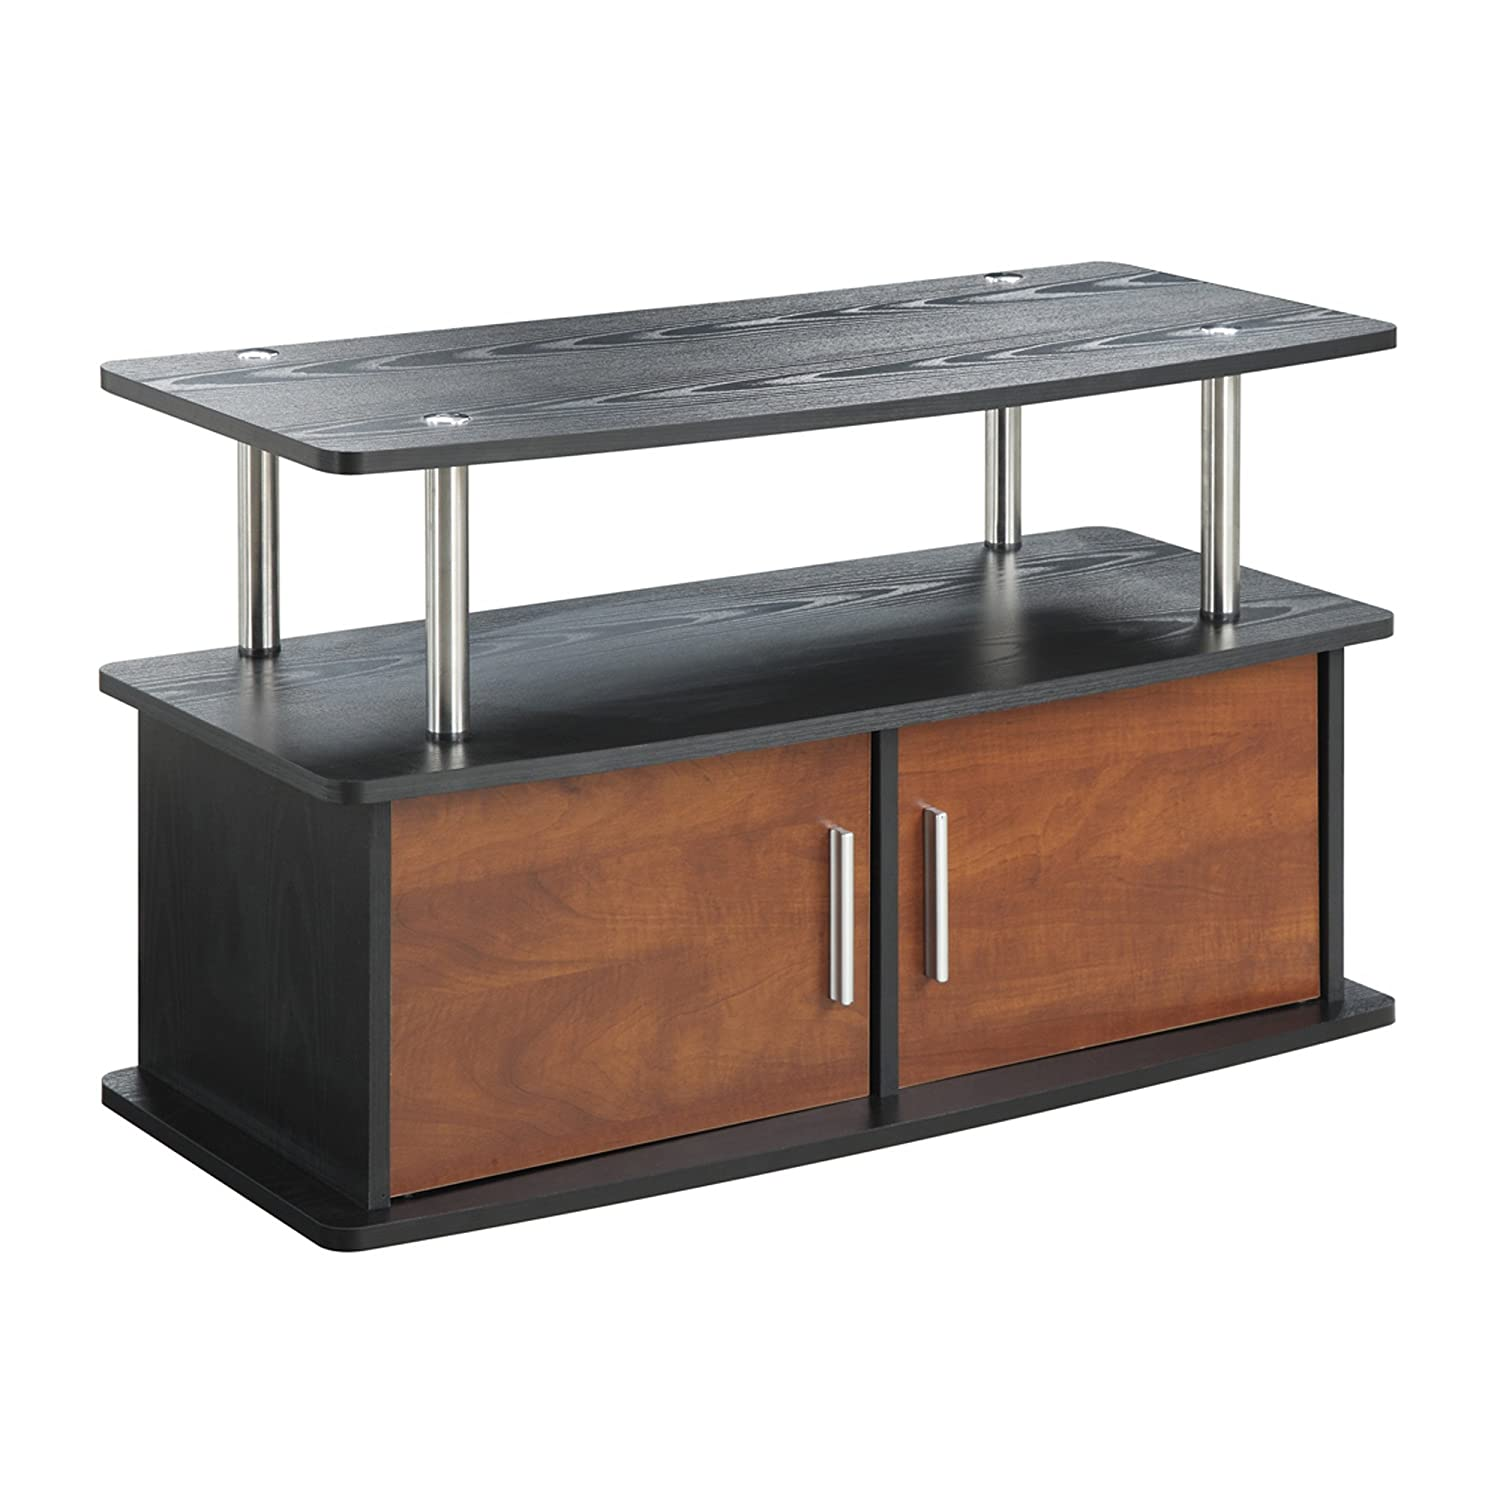 gaming tv stand Amazon.com: TV Stand Entertainment Center Media Gaming Storage Cabinet for  DVDs, CDs, Video Games, Books, Video Devices (Black with Cherry Doors):  Kitchen u0026 ...